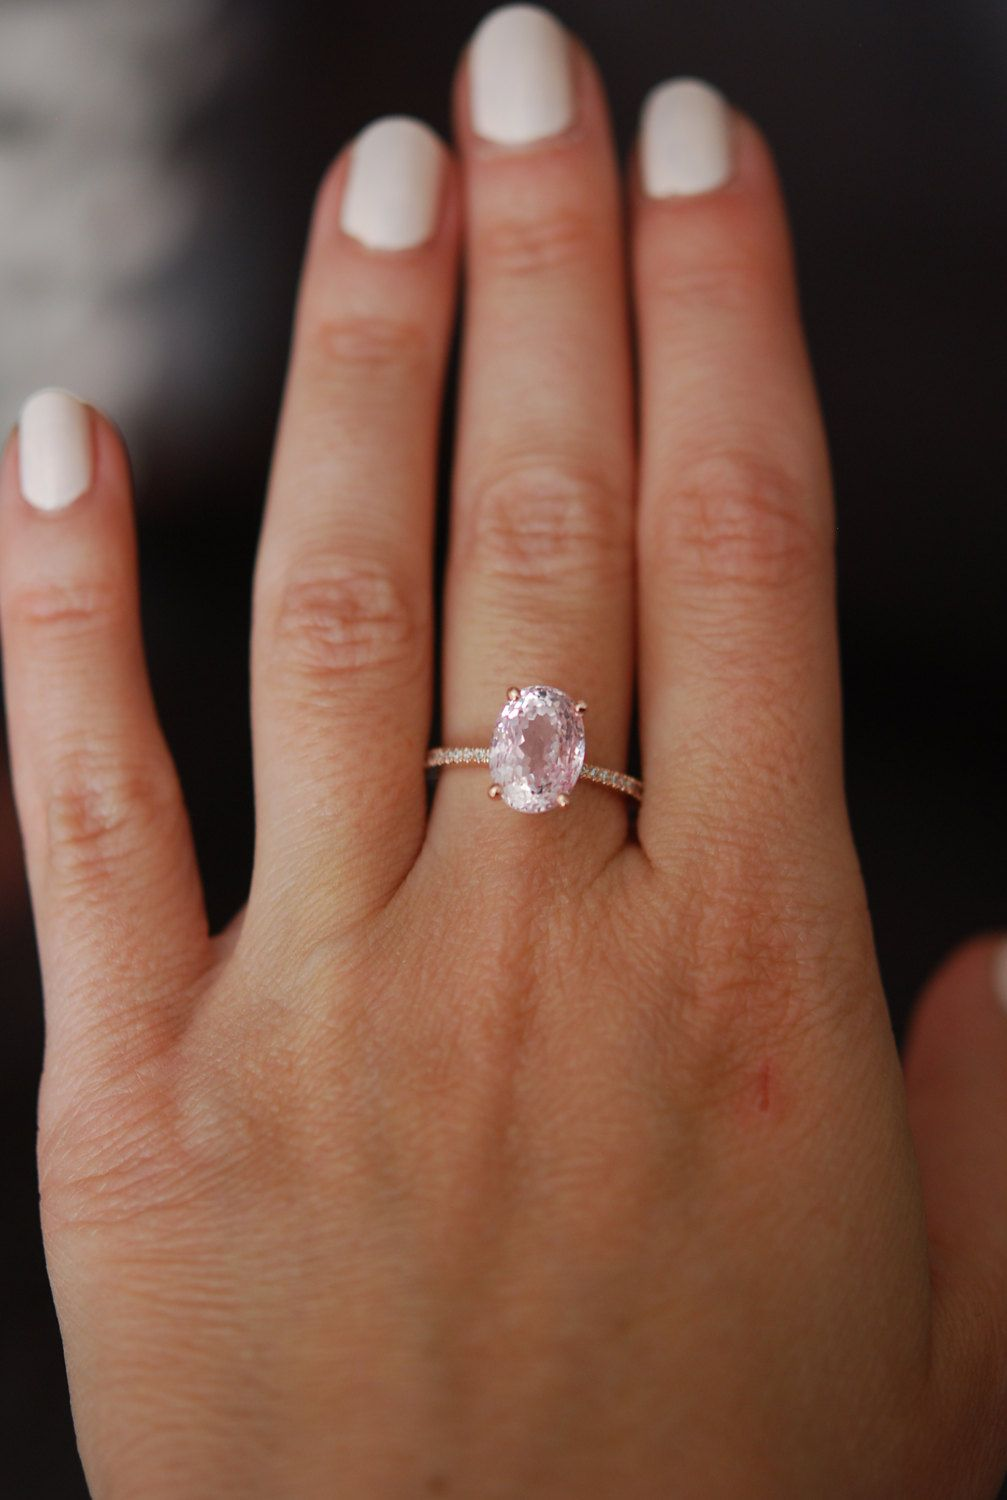 Peach Champagne Shire Engagement Ring Oval Cut 14k Rose Gold Diamond 5 35ct By Eidelprecious